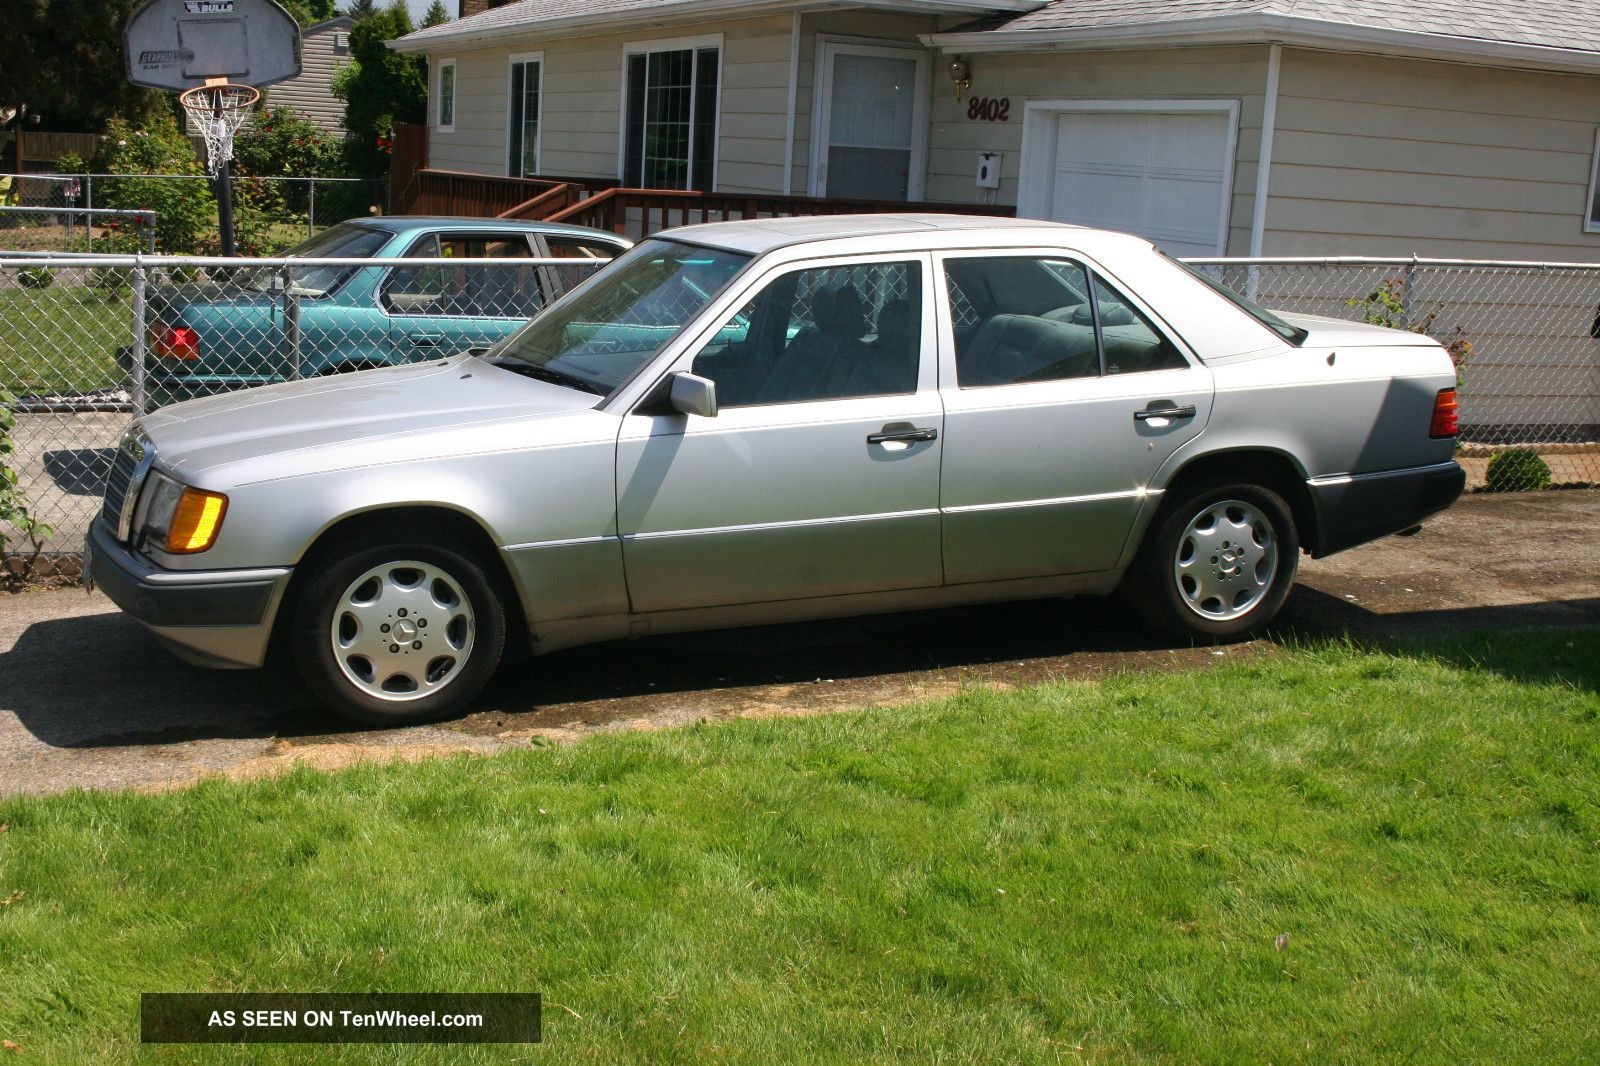 Silver 1993 mercedes benz 400e runs 10 min then for 1993 mercedes benz 400e for sale